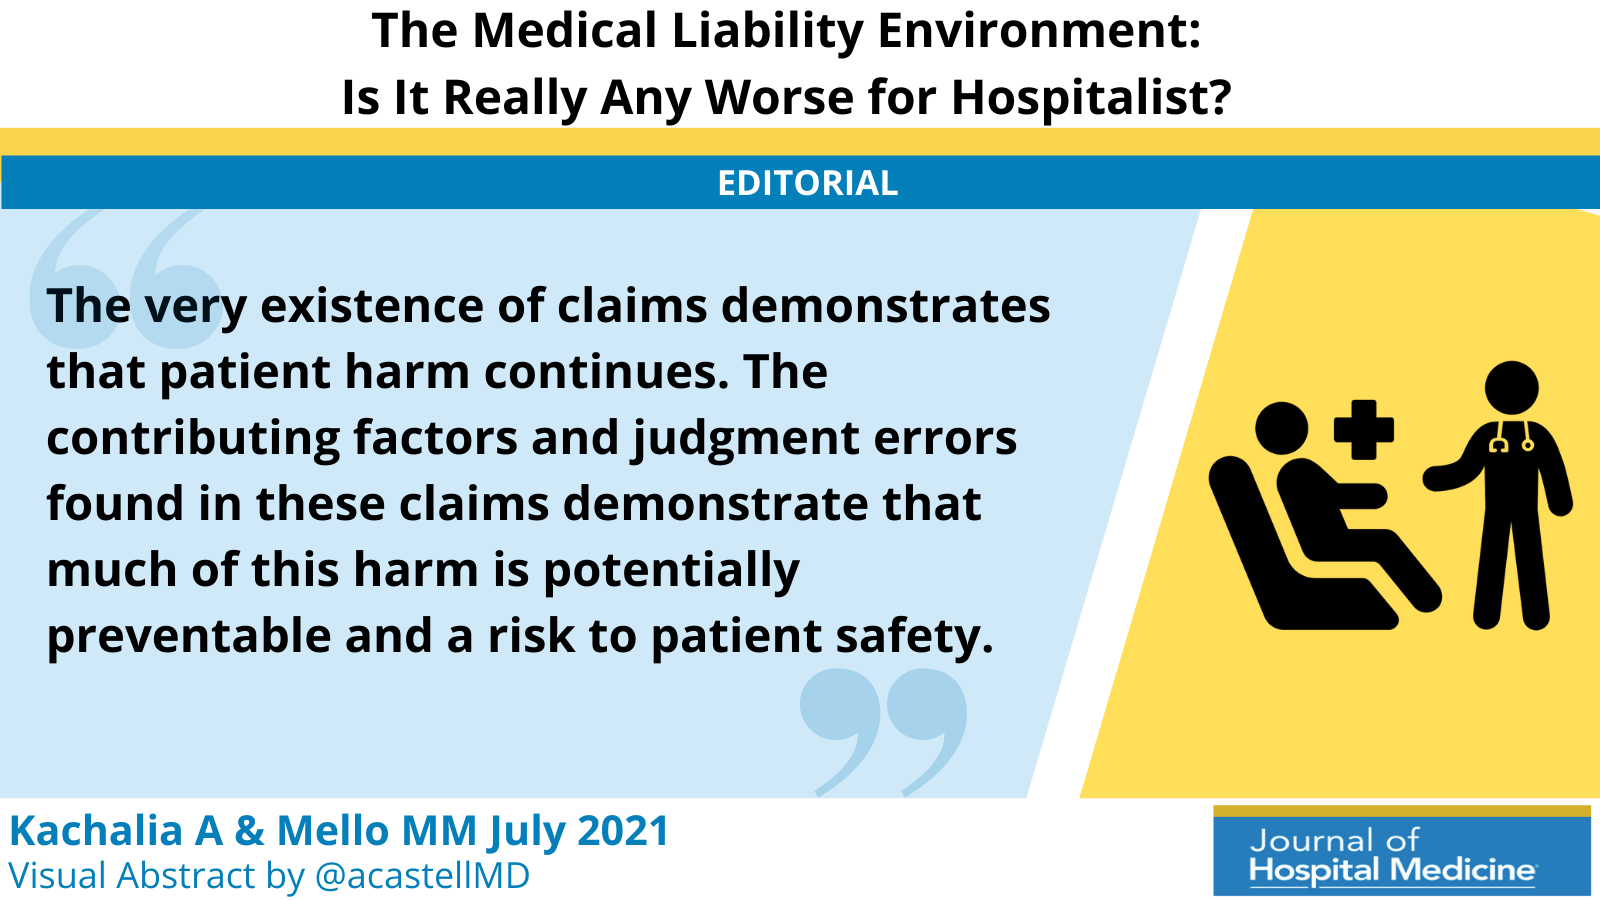 The Medical Liability Environment: Is It Really Any Worse for Hospitalists?